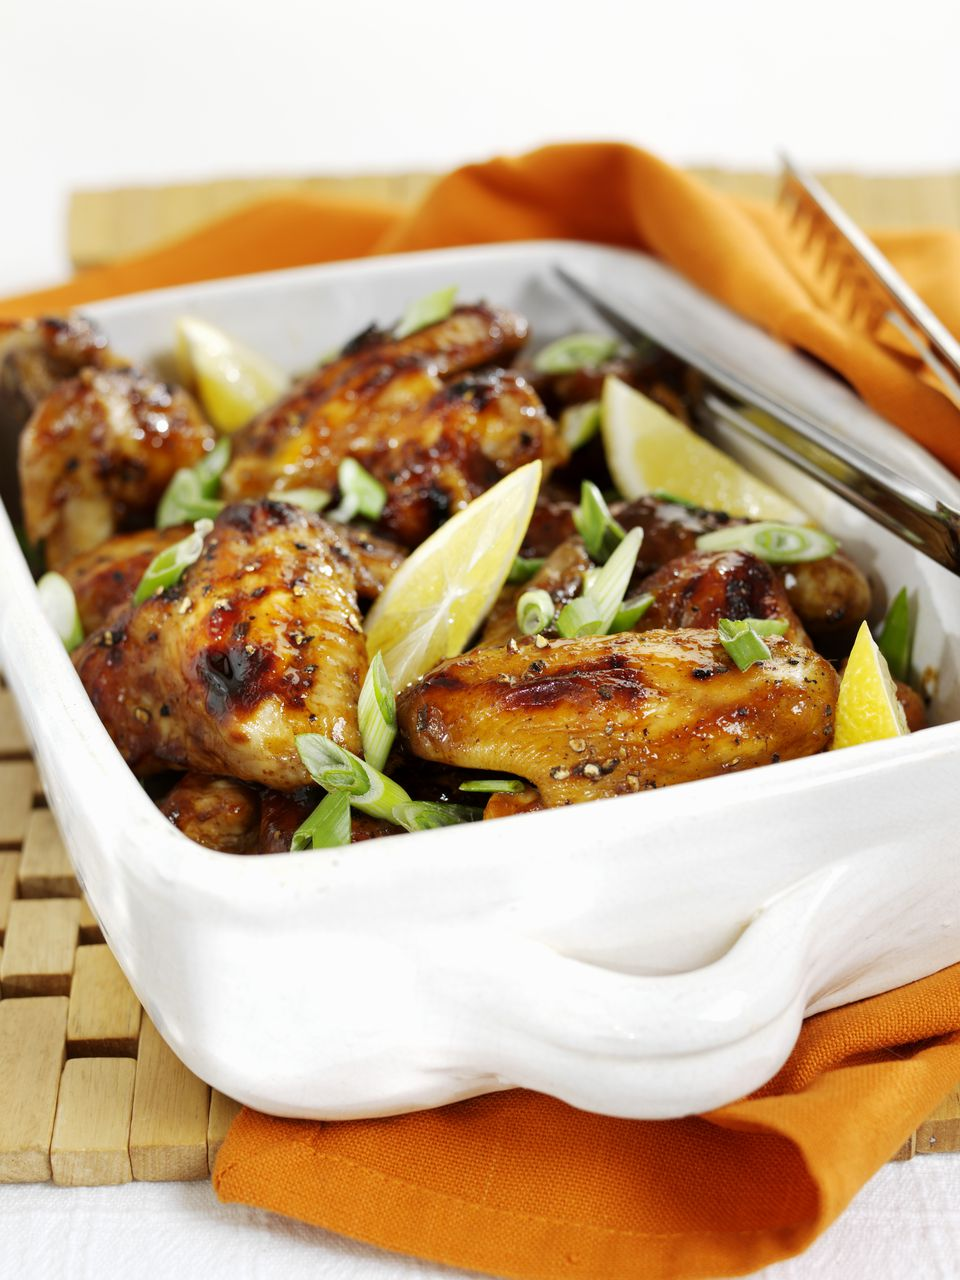 Chicken wings with Hoisin sauce in a roasting dish